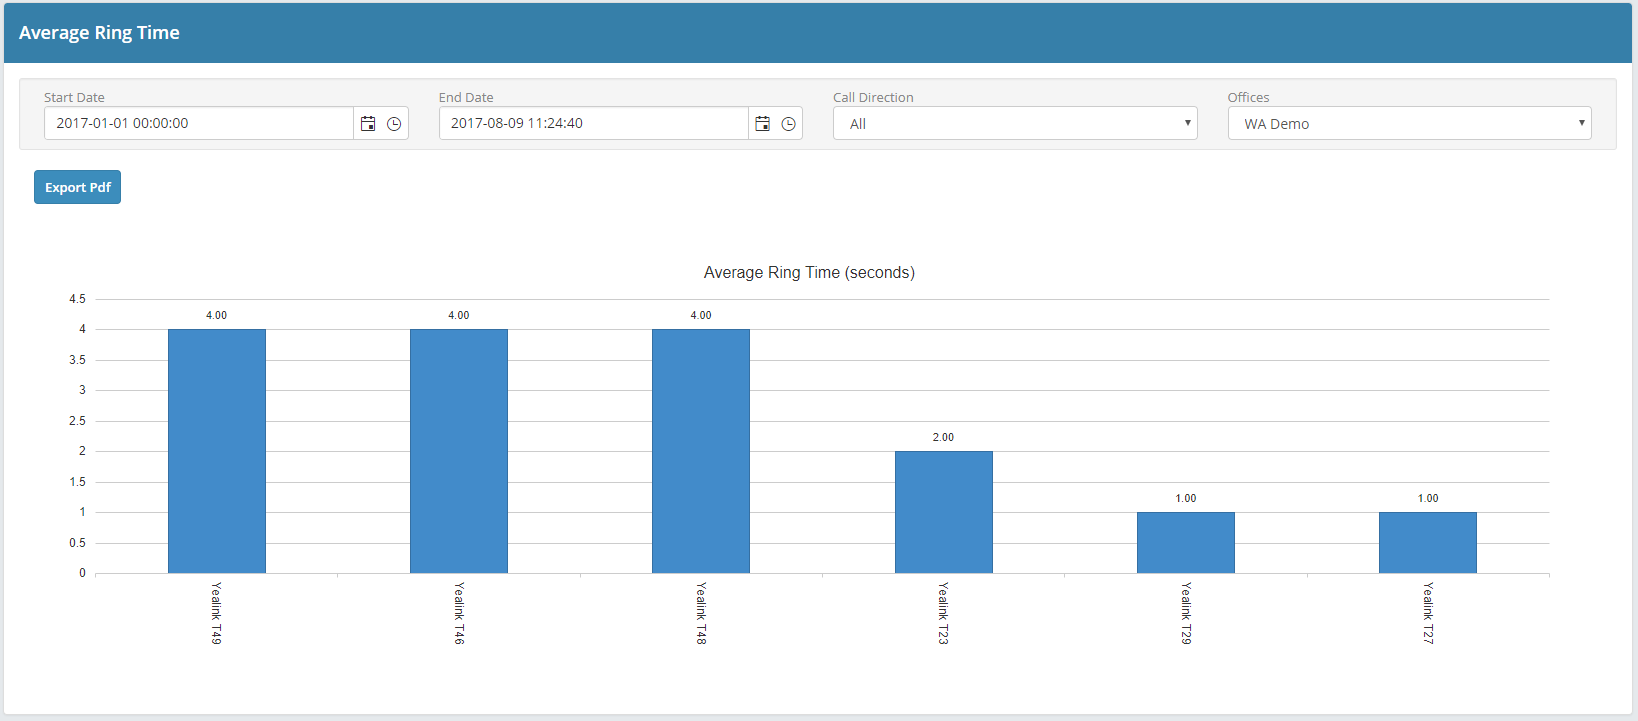 Portal - Report Dashboard - Average Ring Time - One Office